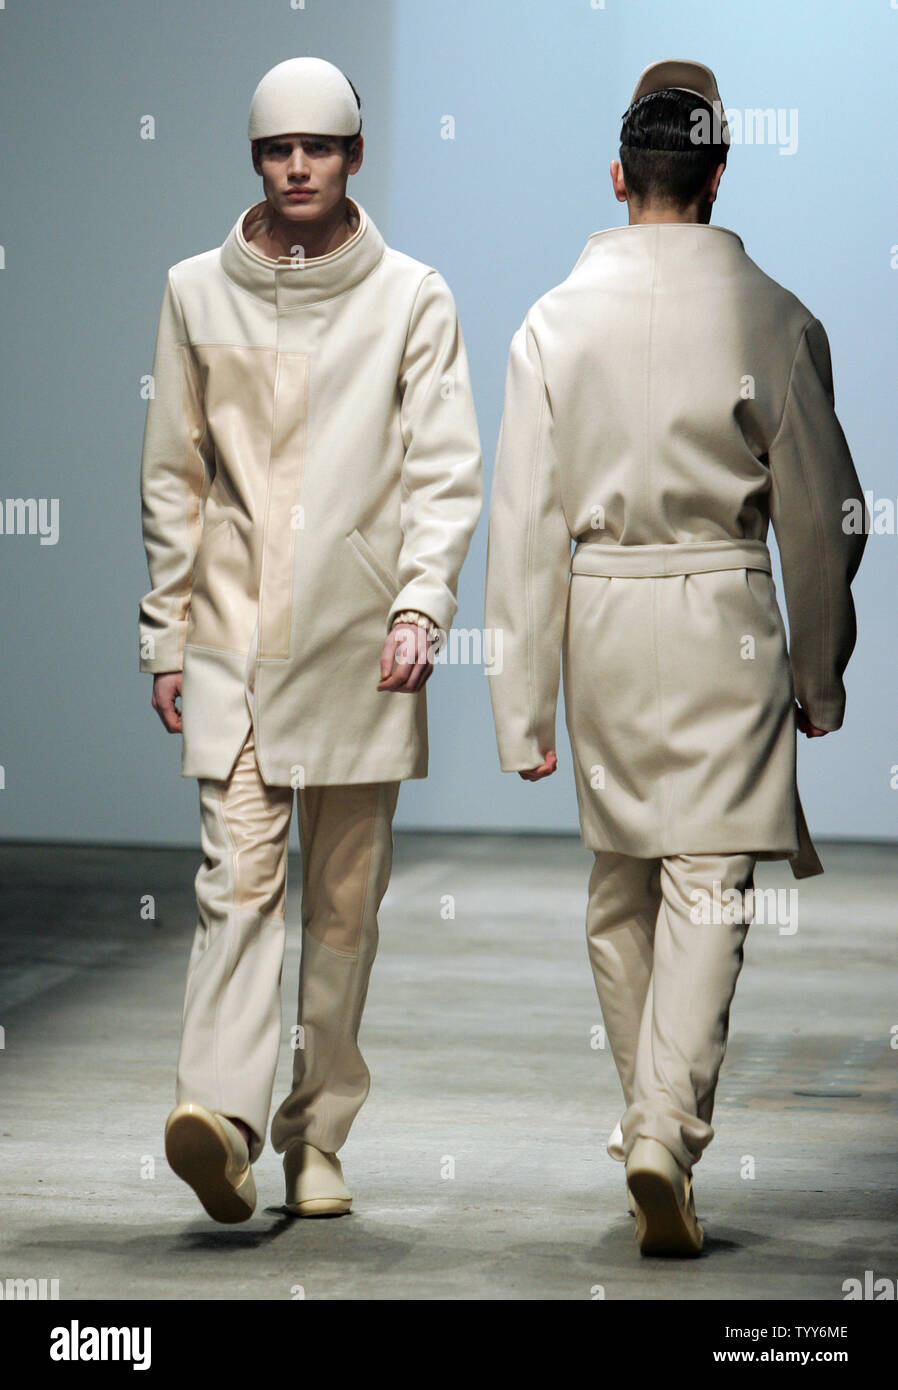 A Model Wears An Outfit By French Fashion Designer Romain Kremer During The Men High Fashion Collection Presentations In Paris January 24 2010 Upi Eco Clement Stock Photo Alamy